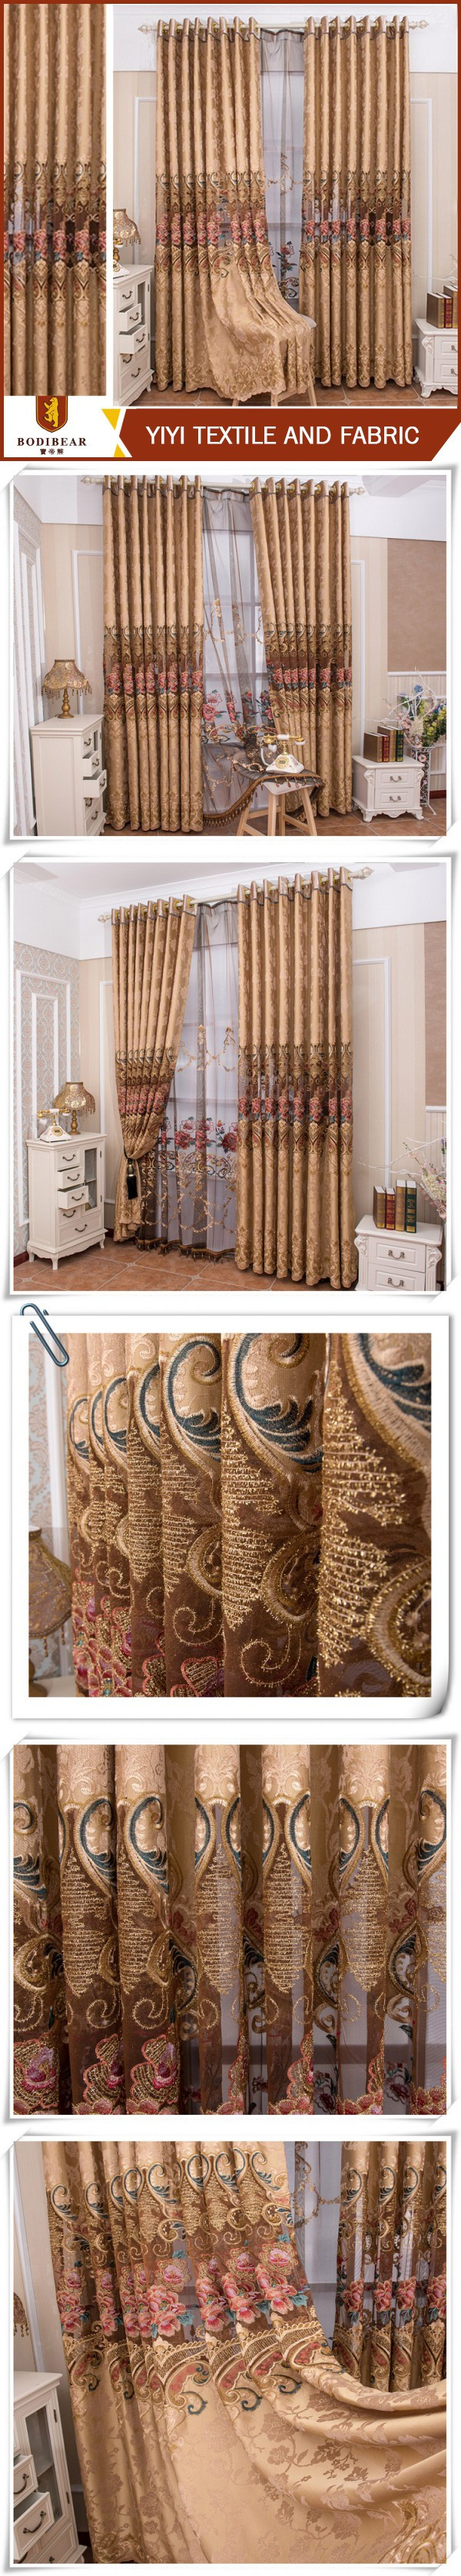 The new customized embroidered curtain modern simple european luxury